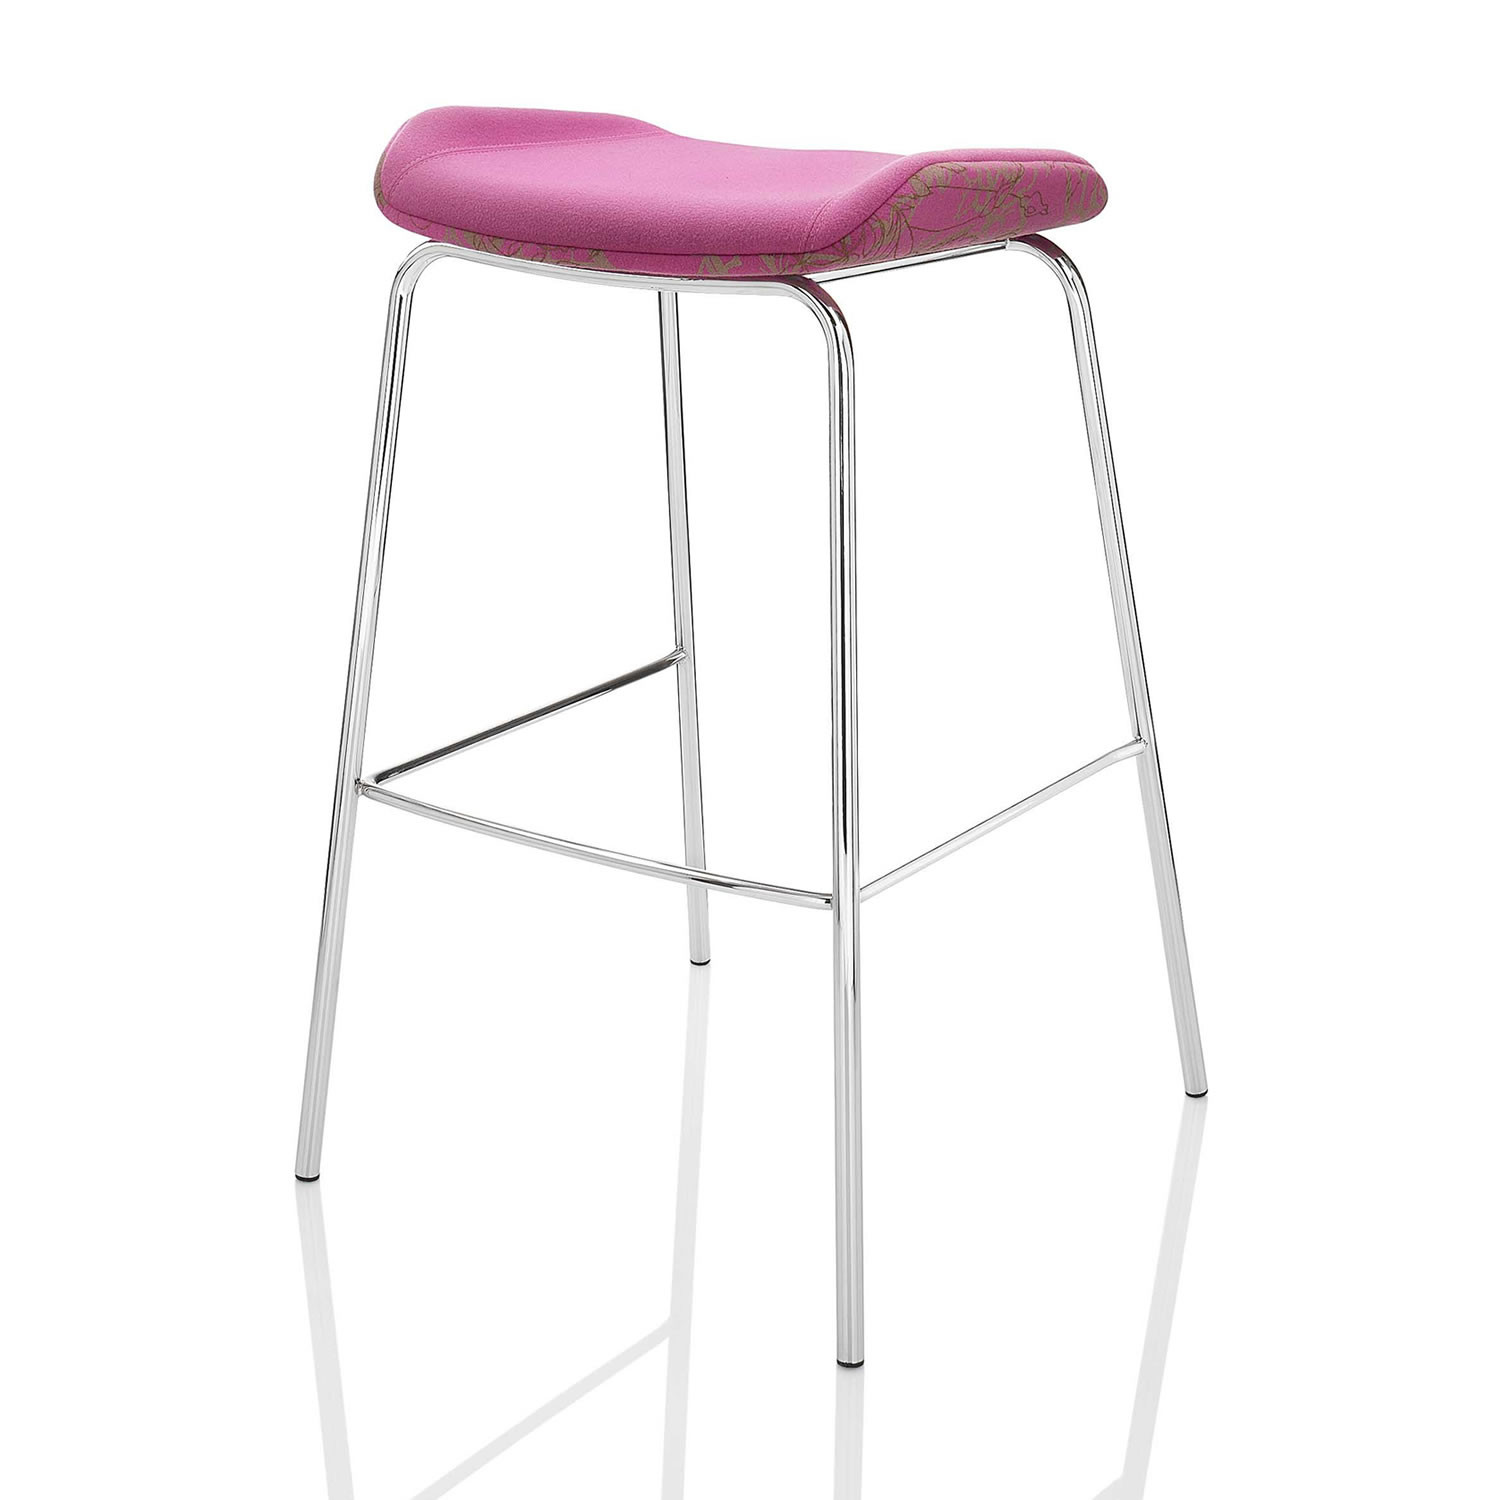 Kruze Upholstered Bar Stool by Boss Design